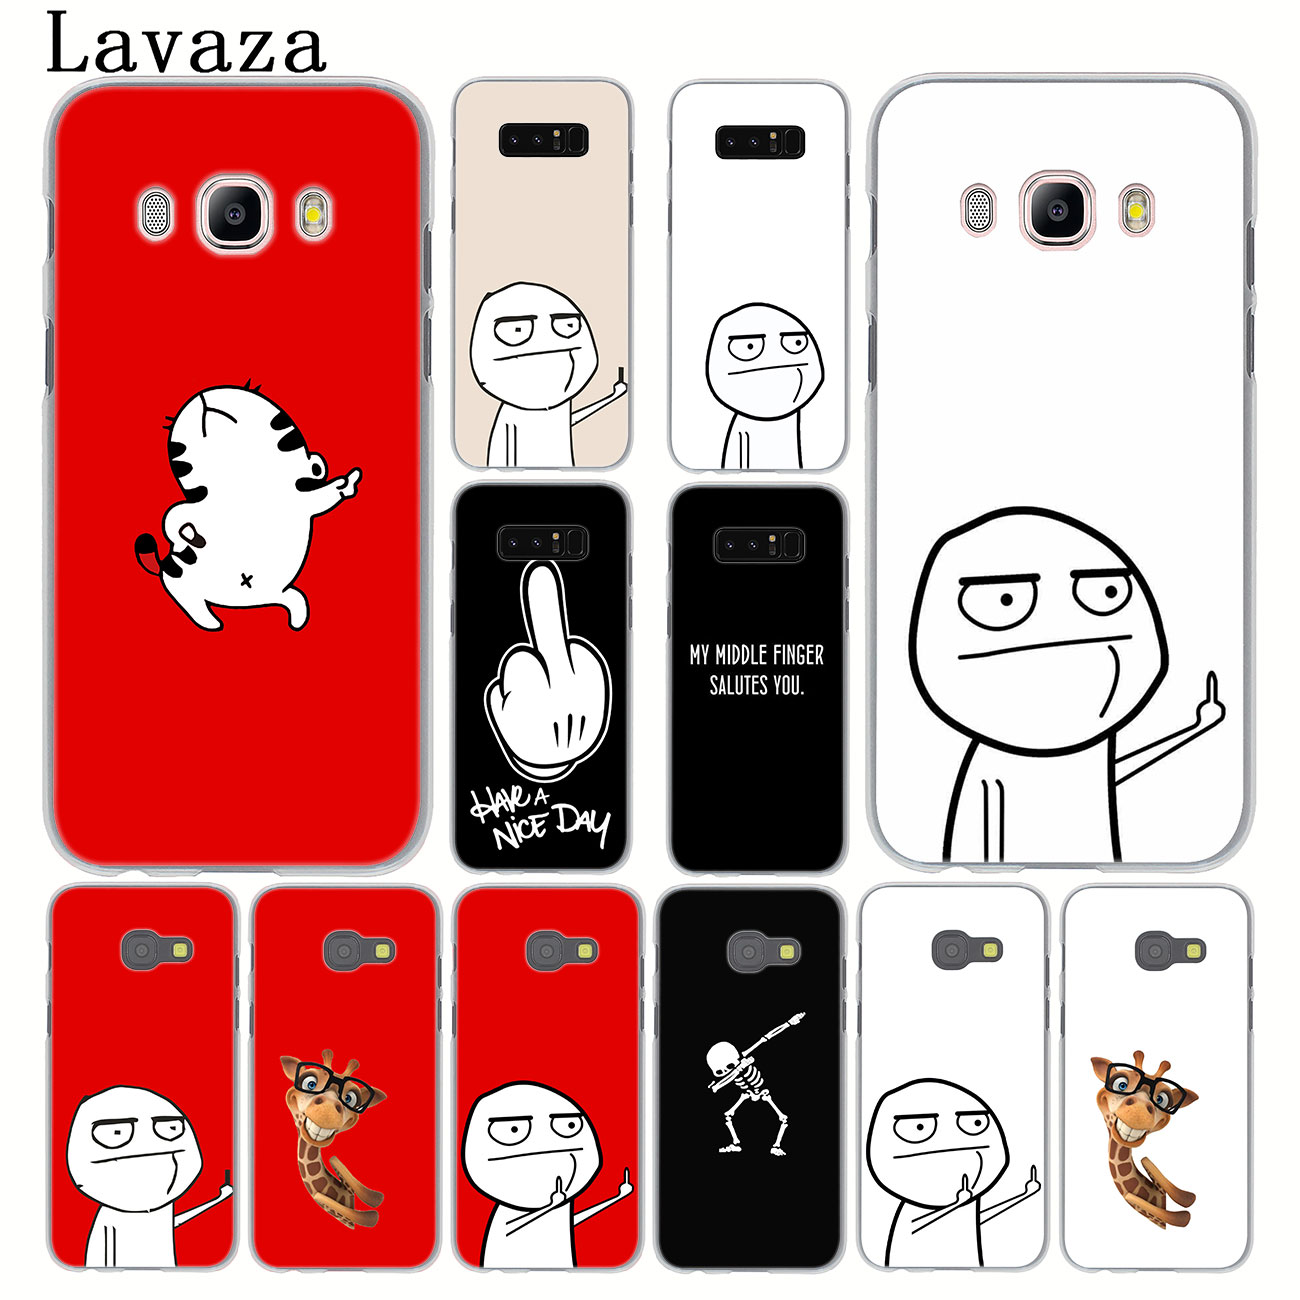 meme face Middle Finger Funny Cartoon Lovers Case for Samsung Galaxy Note 10 9 8 A9 A8 A7 A6 Plus 2018 A5 A3 2015 2016 2017 A2 image